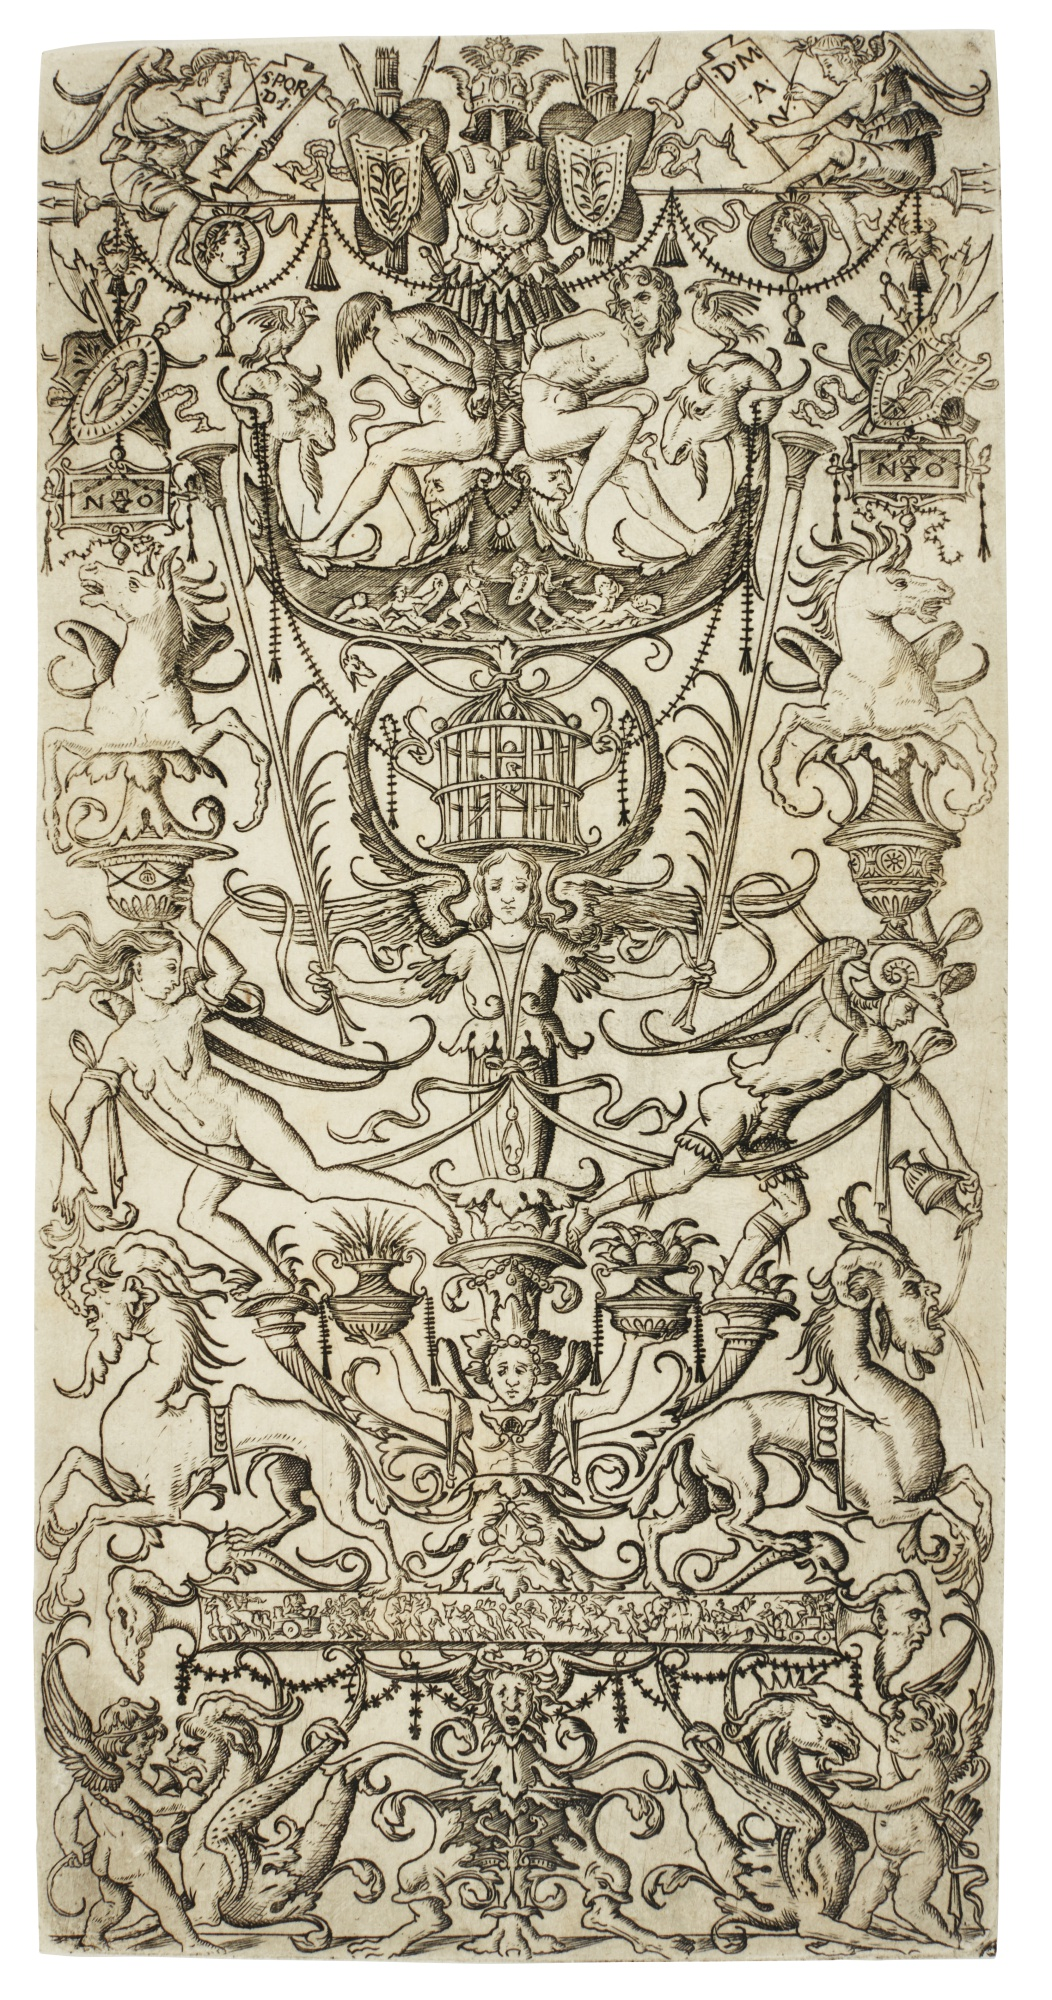 Nicoletto da Modena-Ornament Panel With Bound Slaves And A Birdcage (B. Vol. Xxv 56; B. Vol. Xxv Commentary 92; H. Vol. V. 105)-